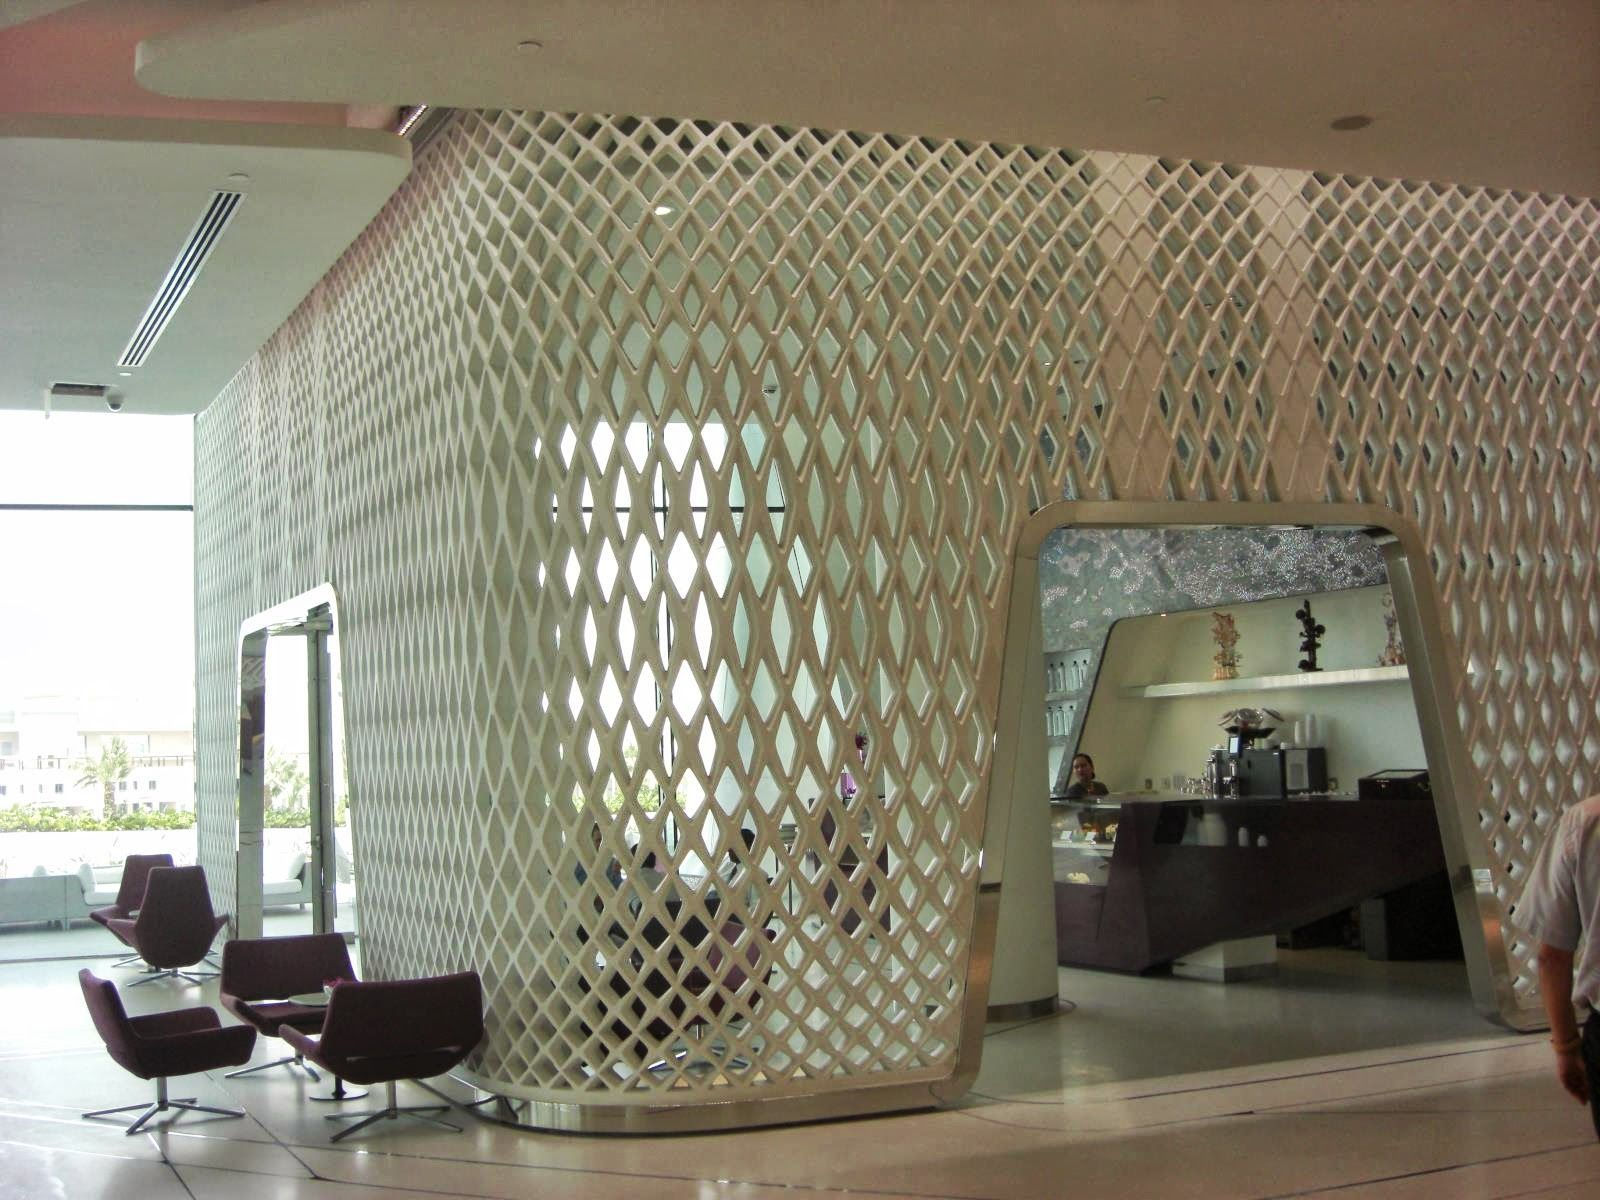 Glass Fiber Reinforced Plastic Gfrp Screens Furniture Design Furniture Cladding